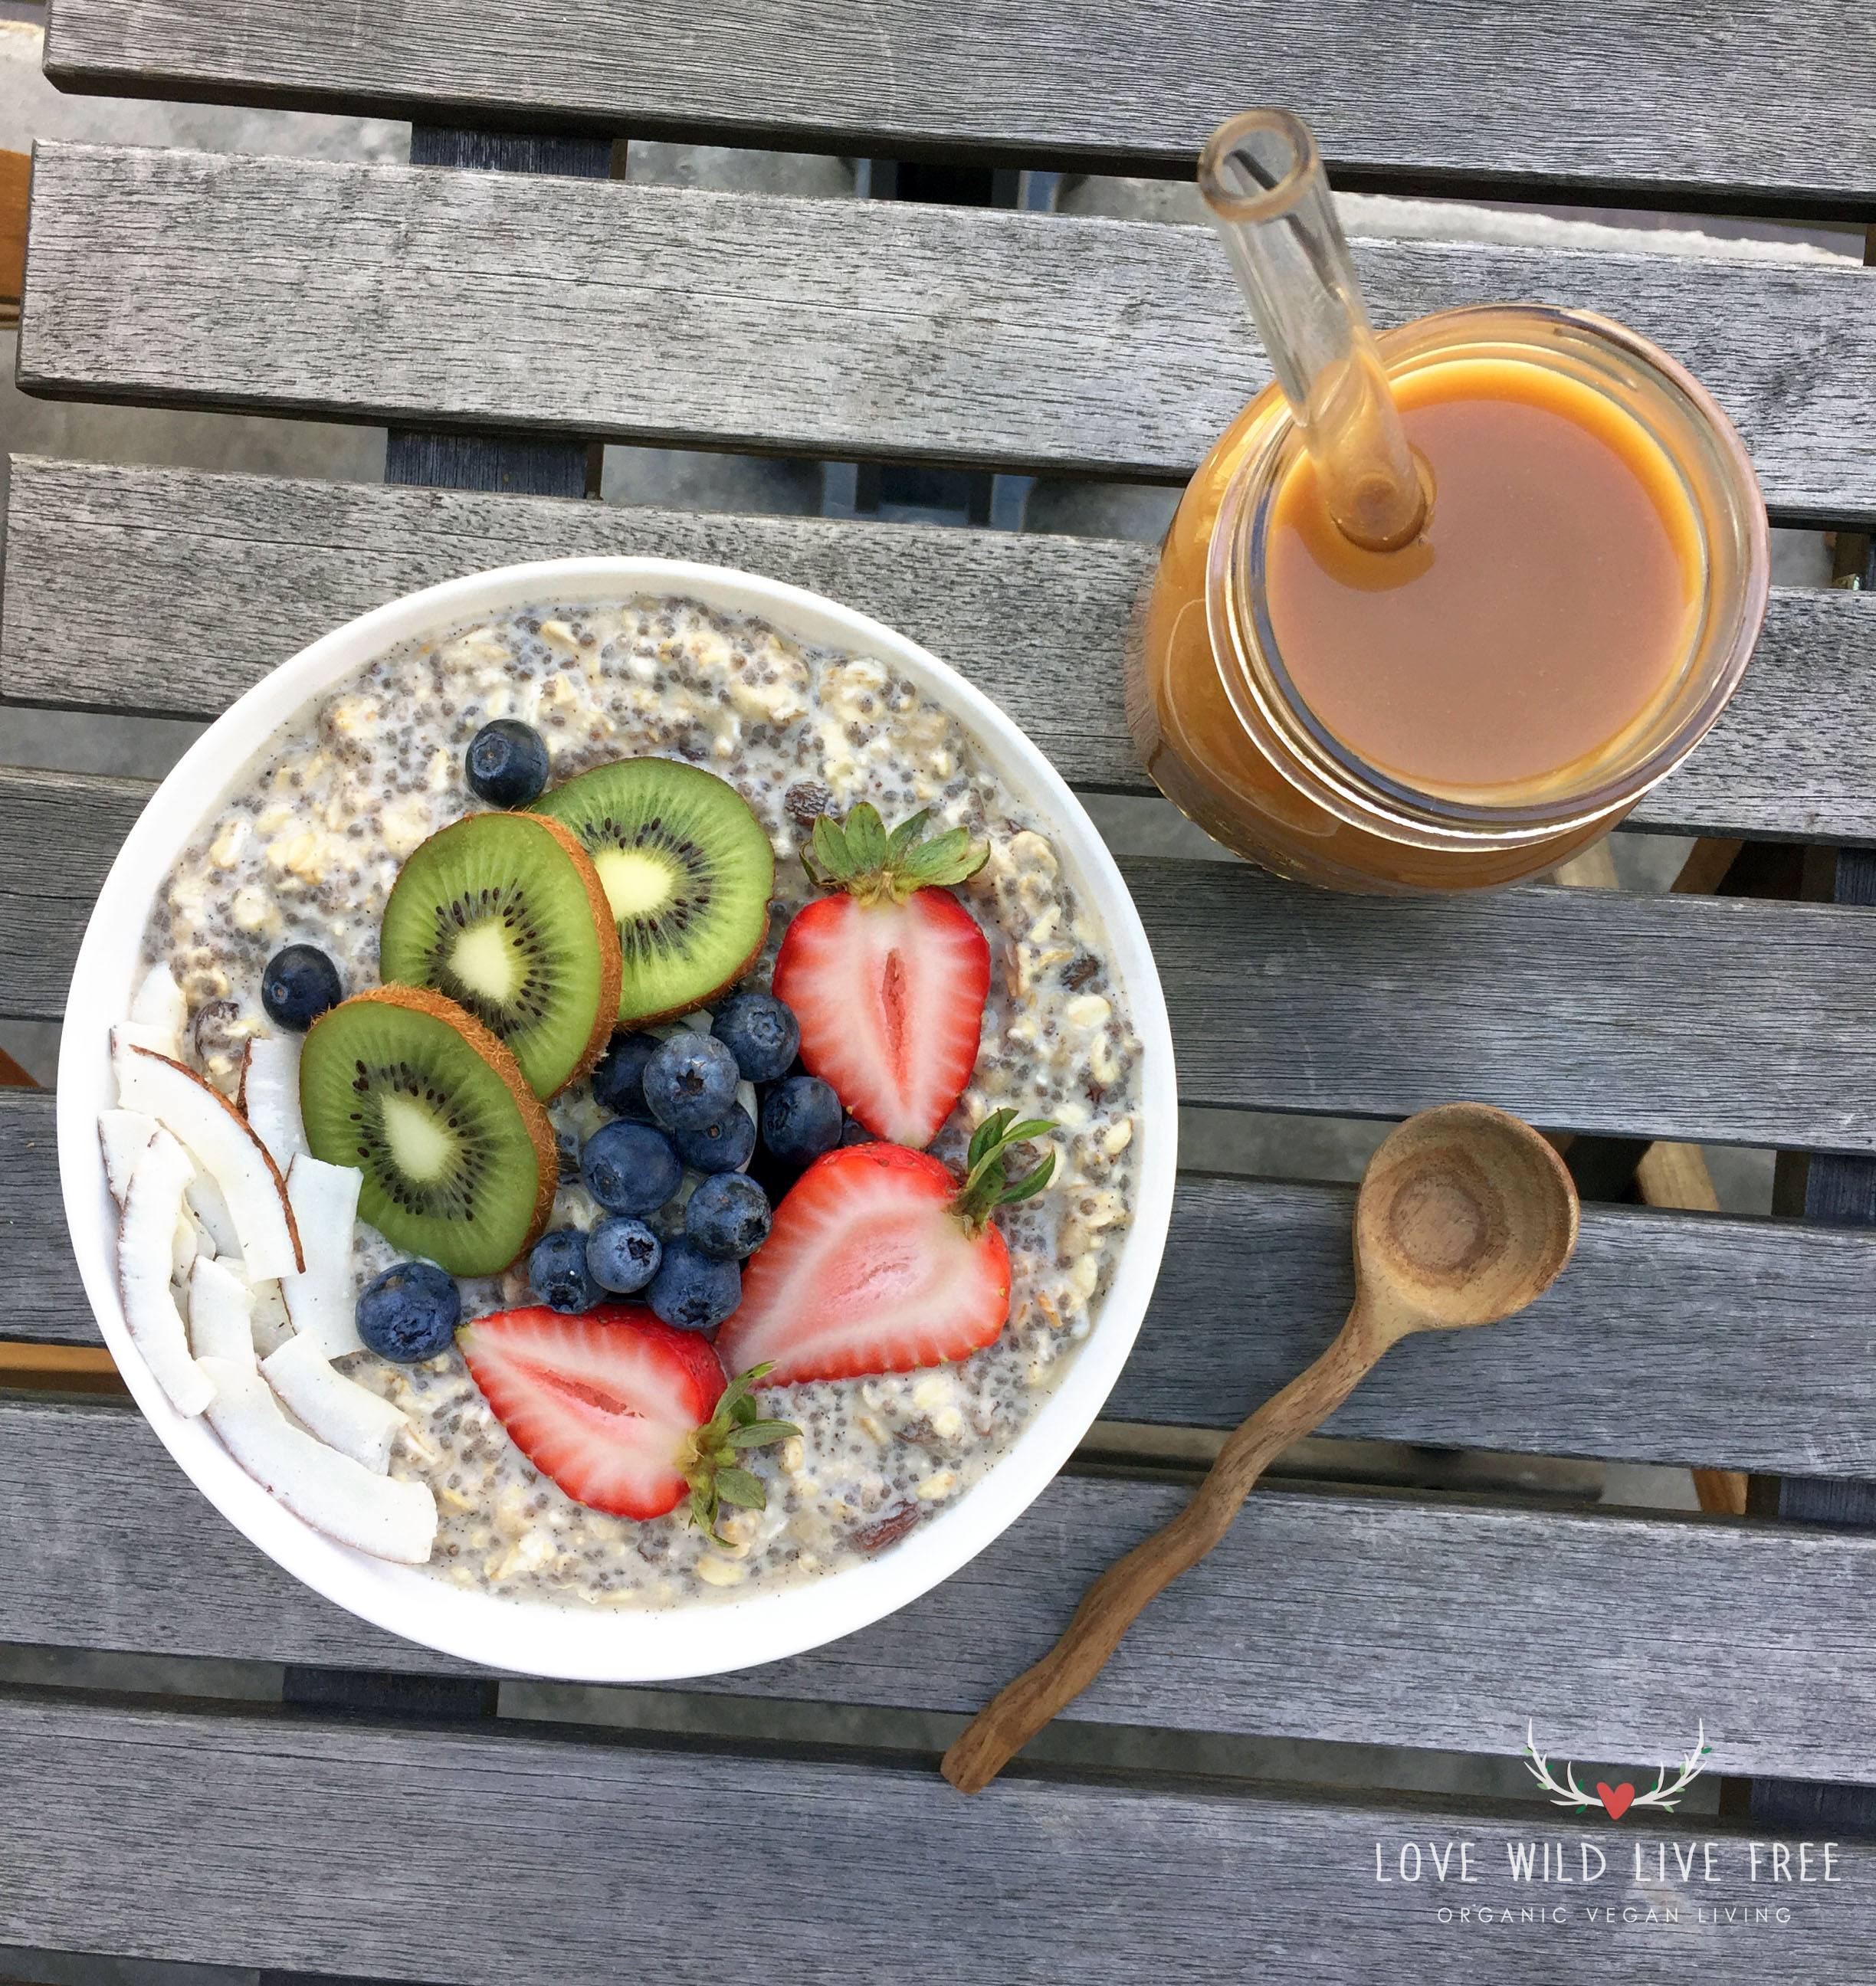 Vanilla-Cinnamon Overnight Oats are an easy to make grab-and-go breakfast. Also pictured above, local Toronto  Hatch Cold Brew Coffee  with  The Chufa Co.  tigernut milk.  Photo by Love Wild Live Free.